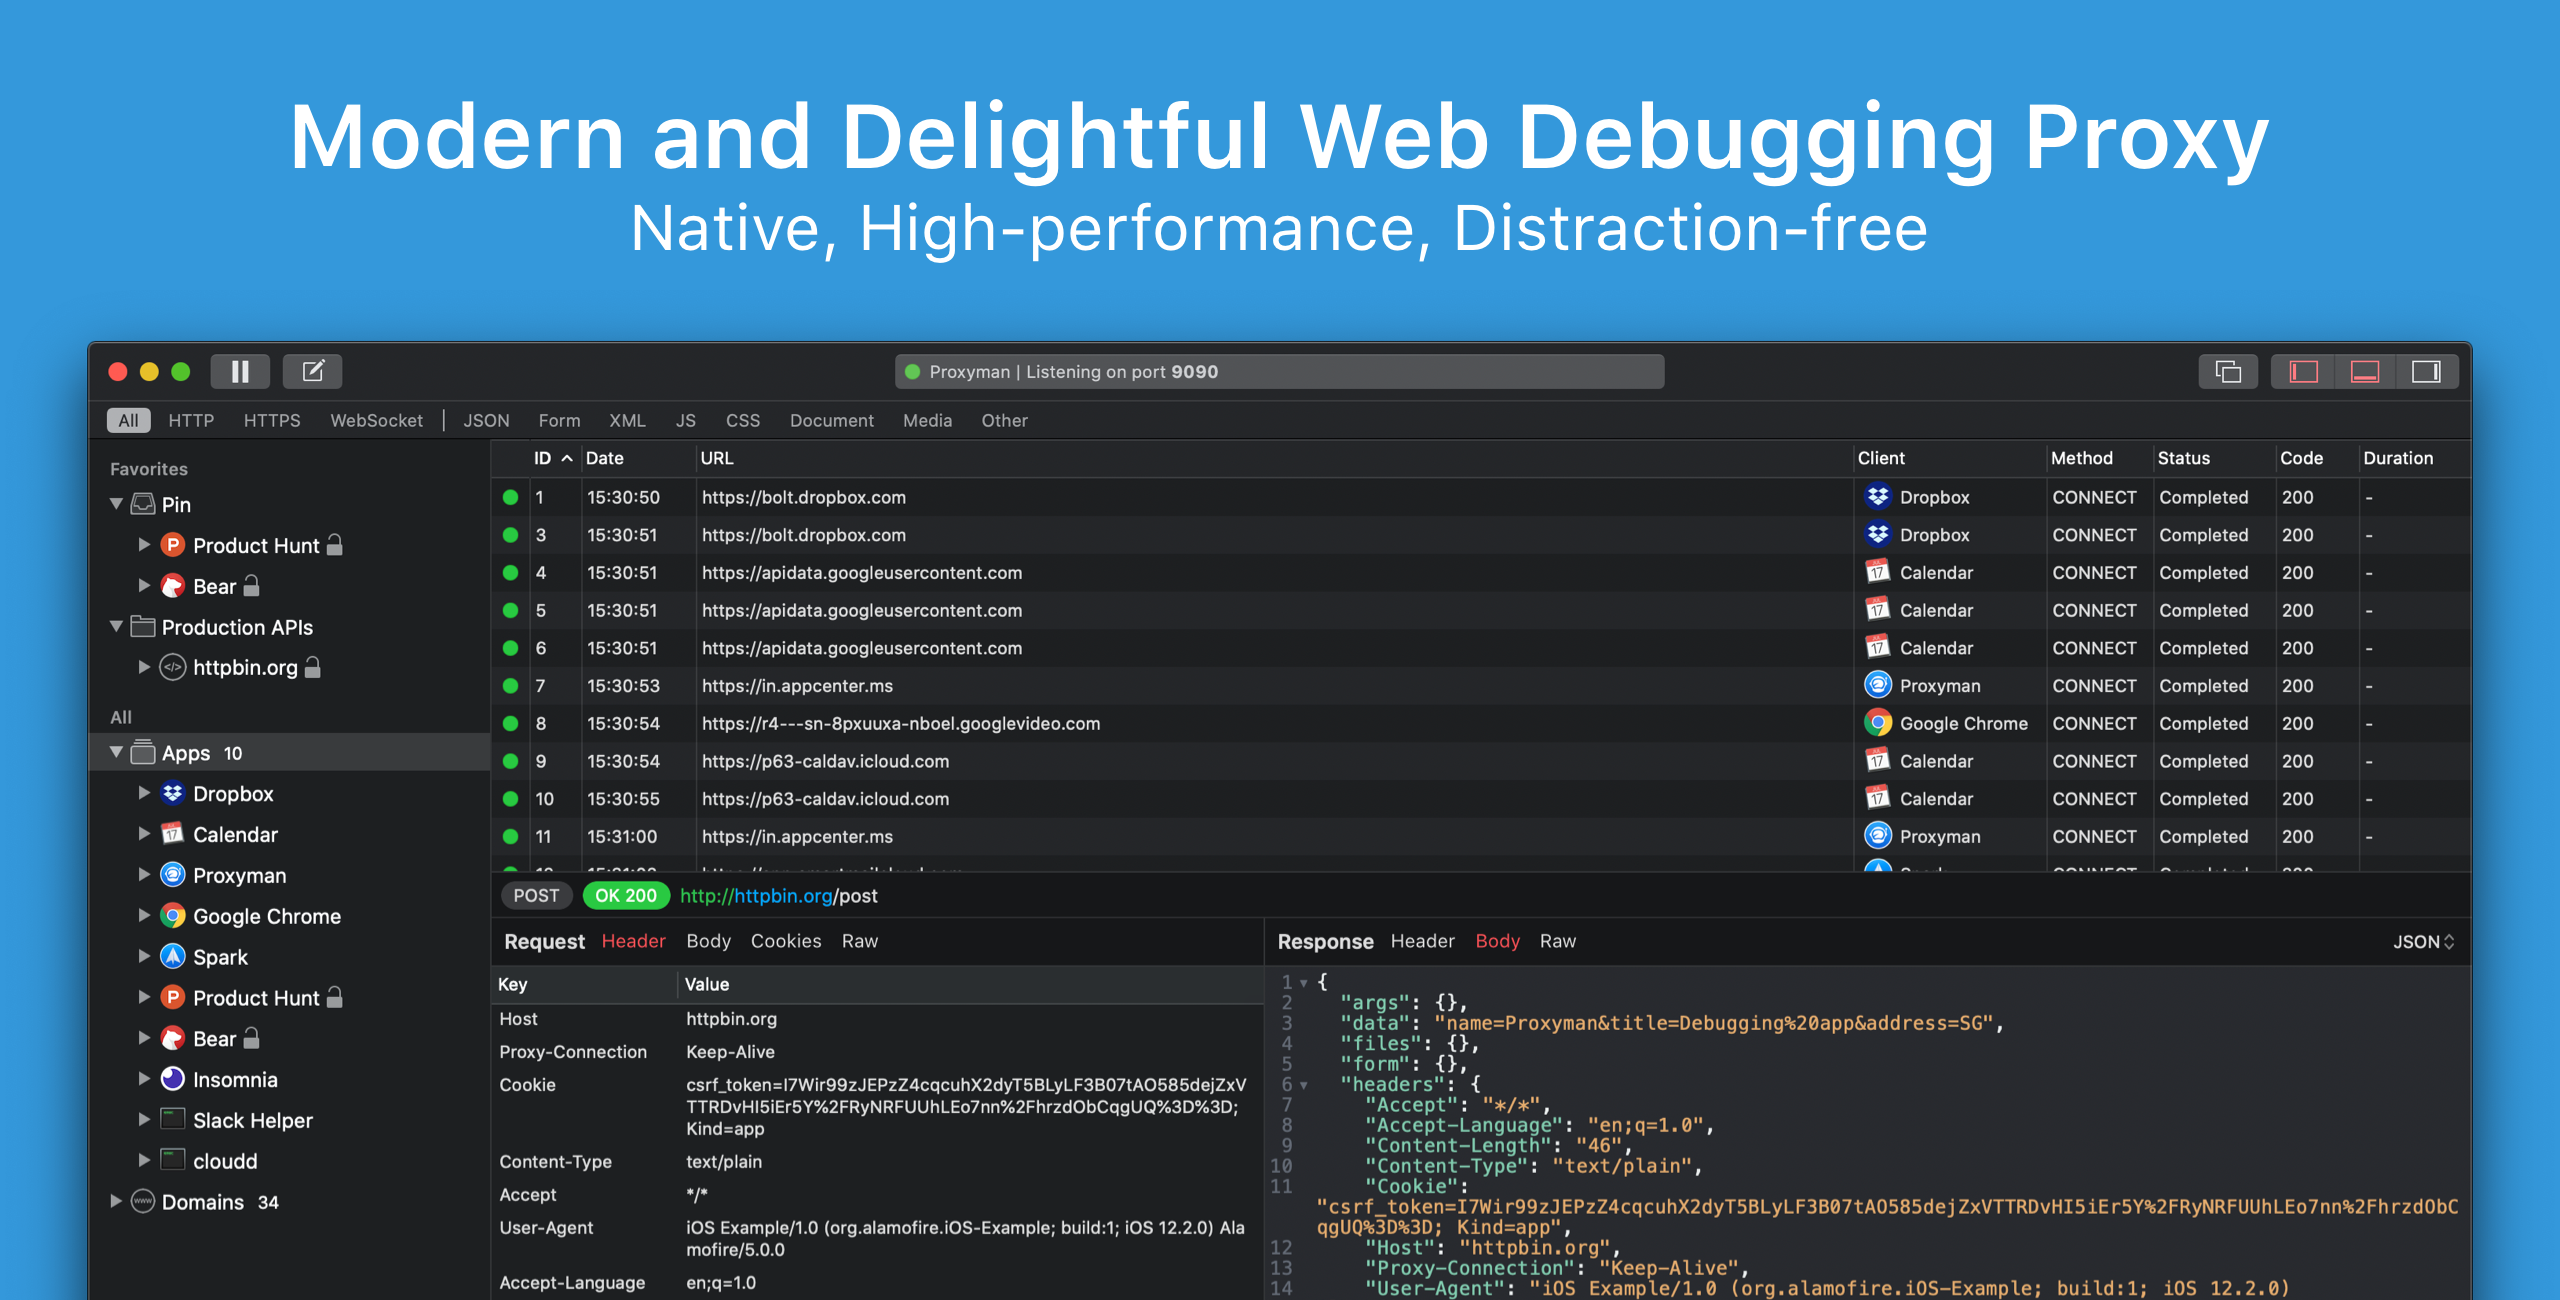 Proxyman * Modern Web Debugging Proxy on macOS, iOS, Android devices and iOS Simulator